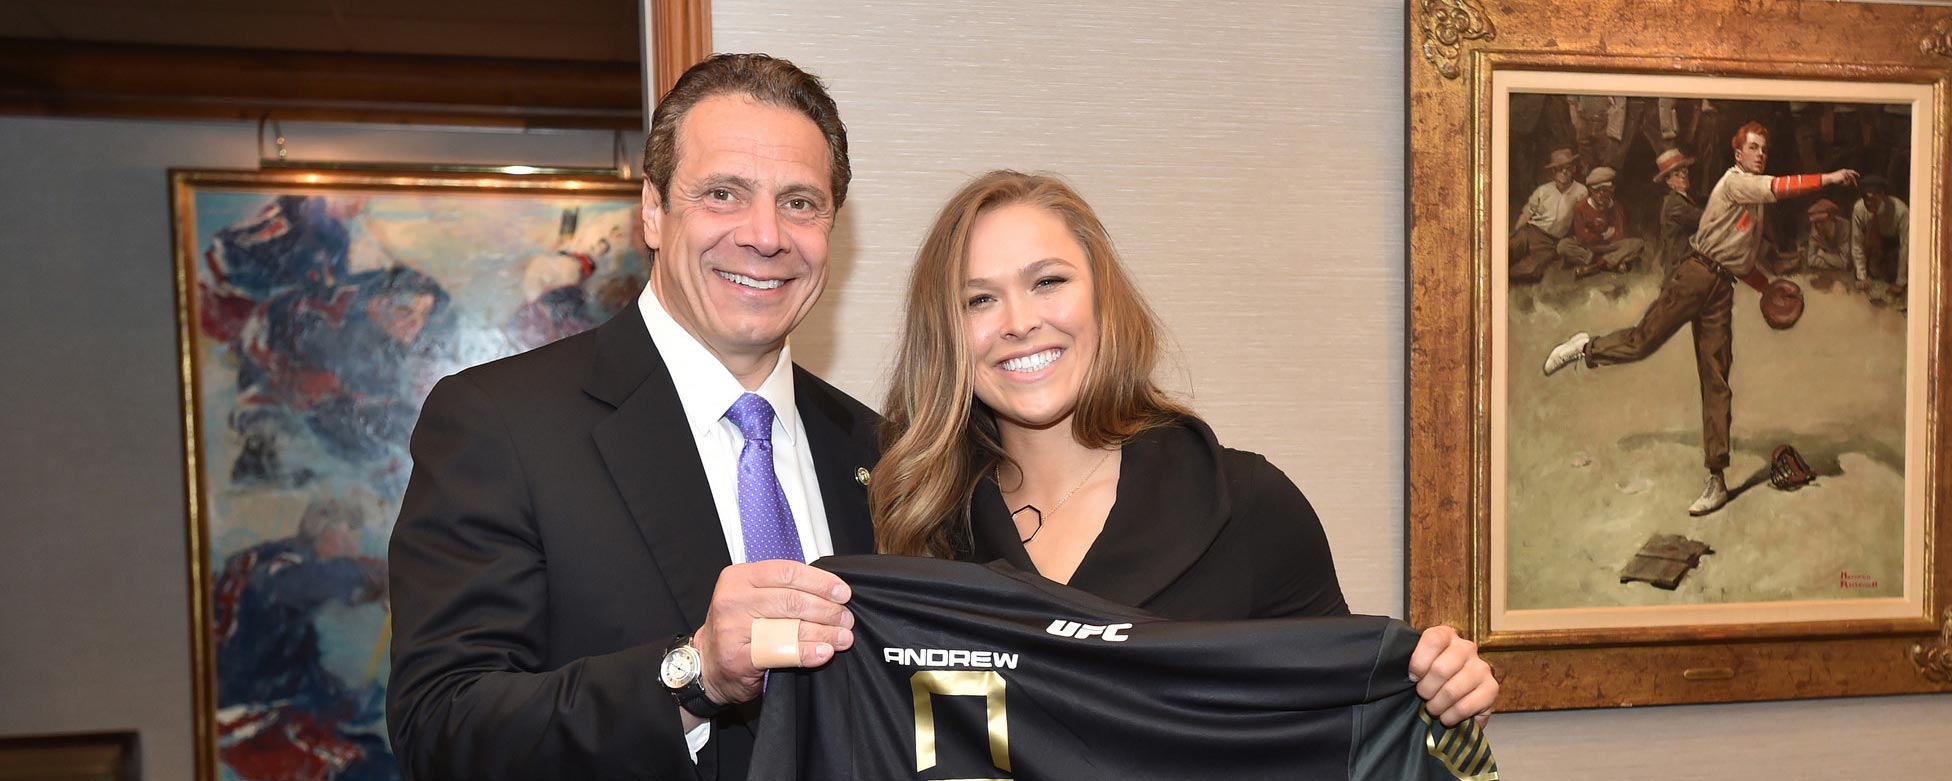 Governor Cuomo Signs Legislation Legalizing Mixed Martial Arts In New York State Governor Andrew M Cuomo